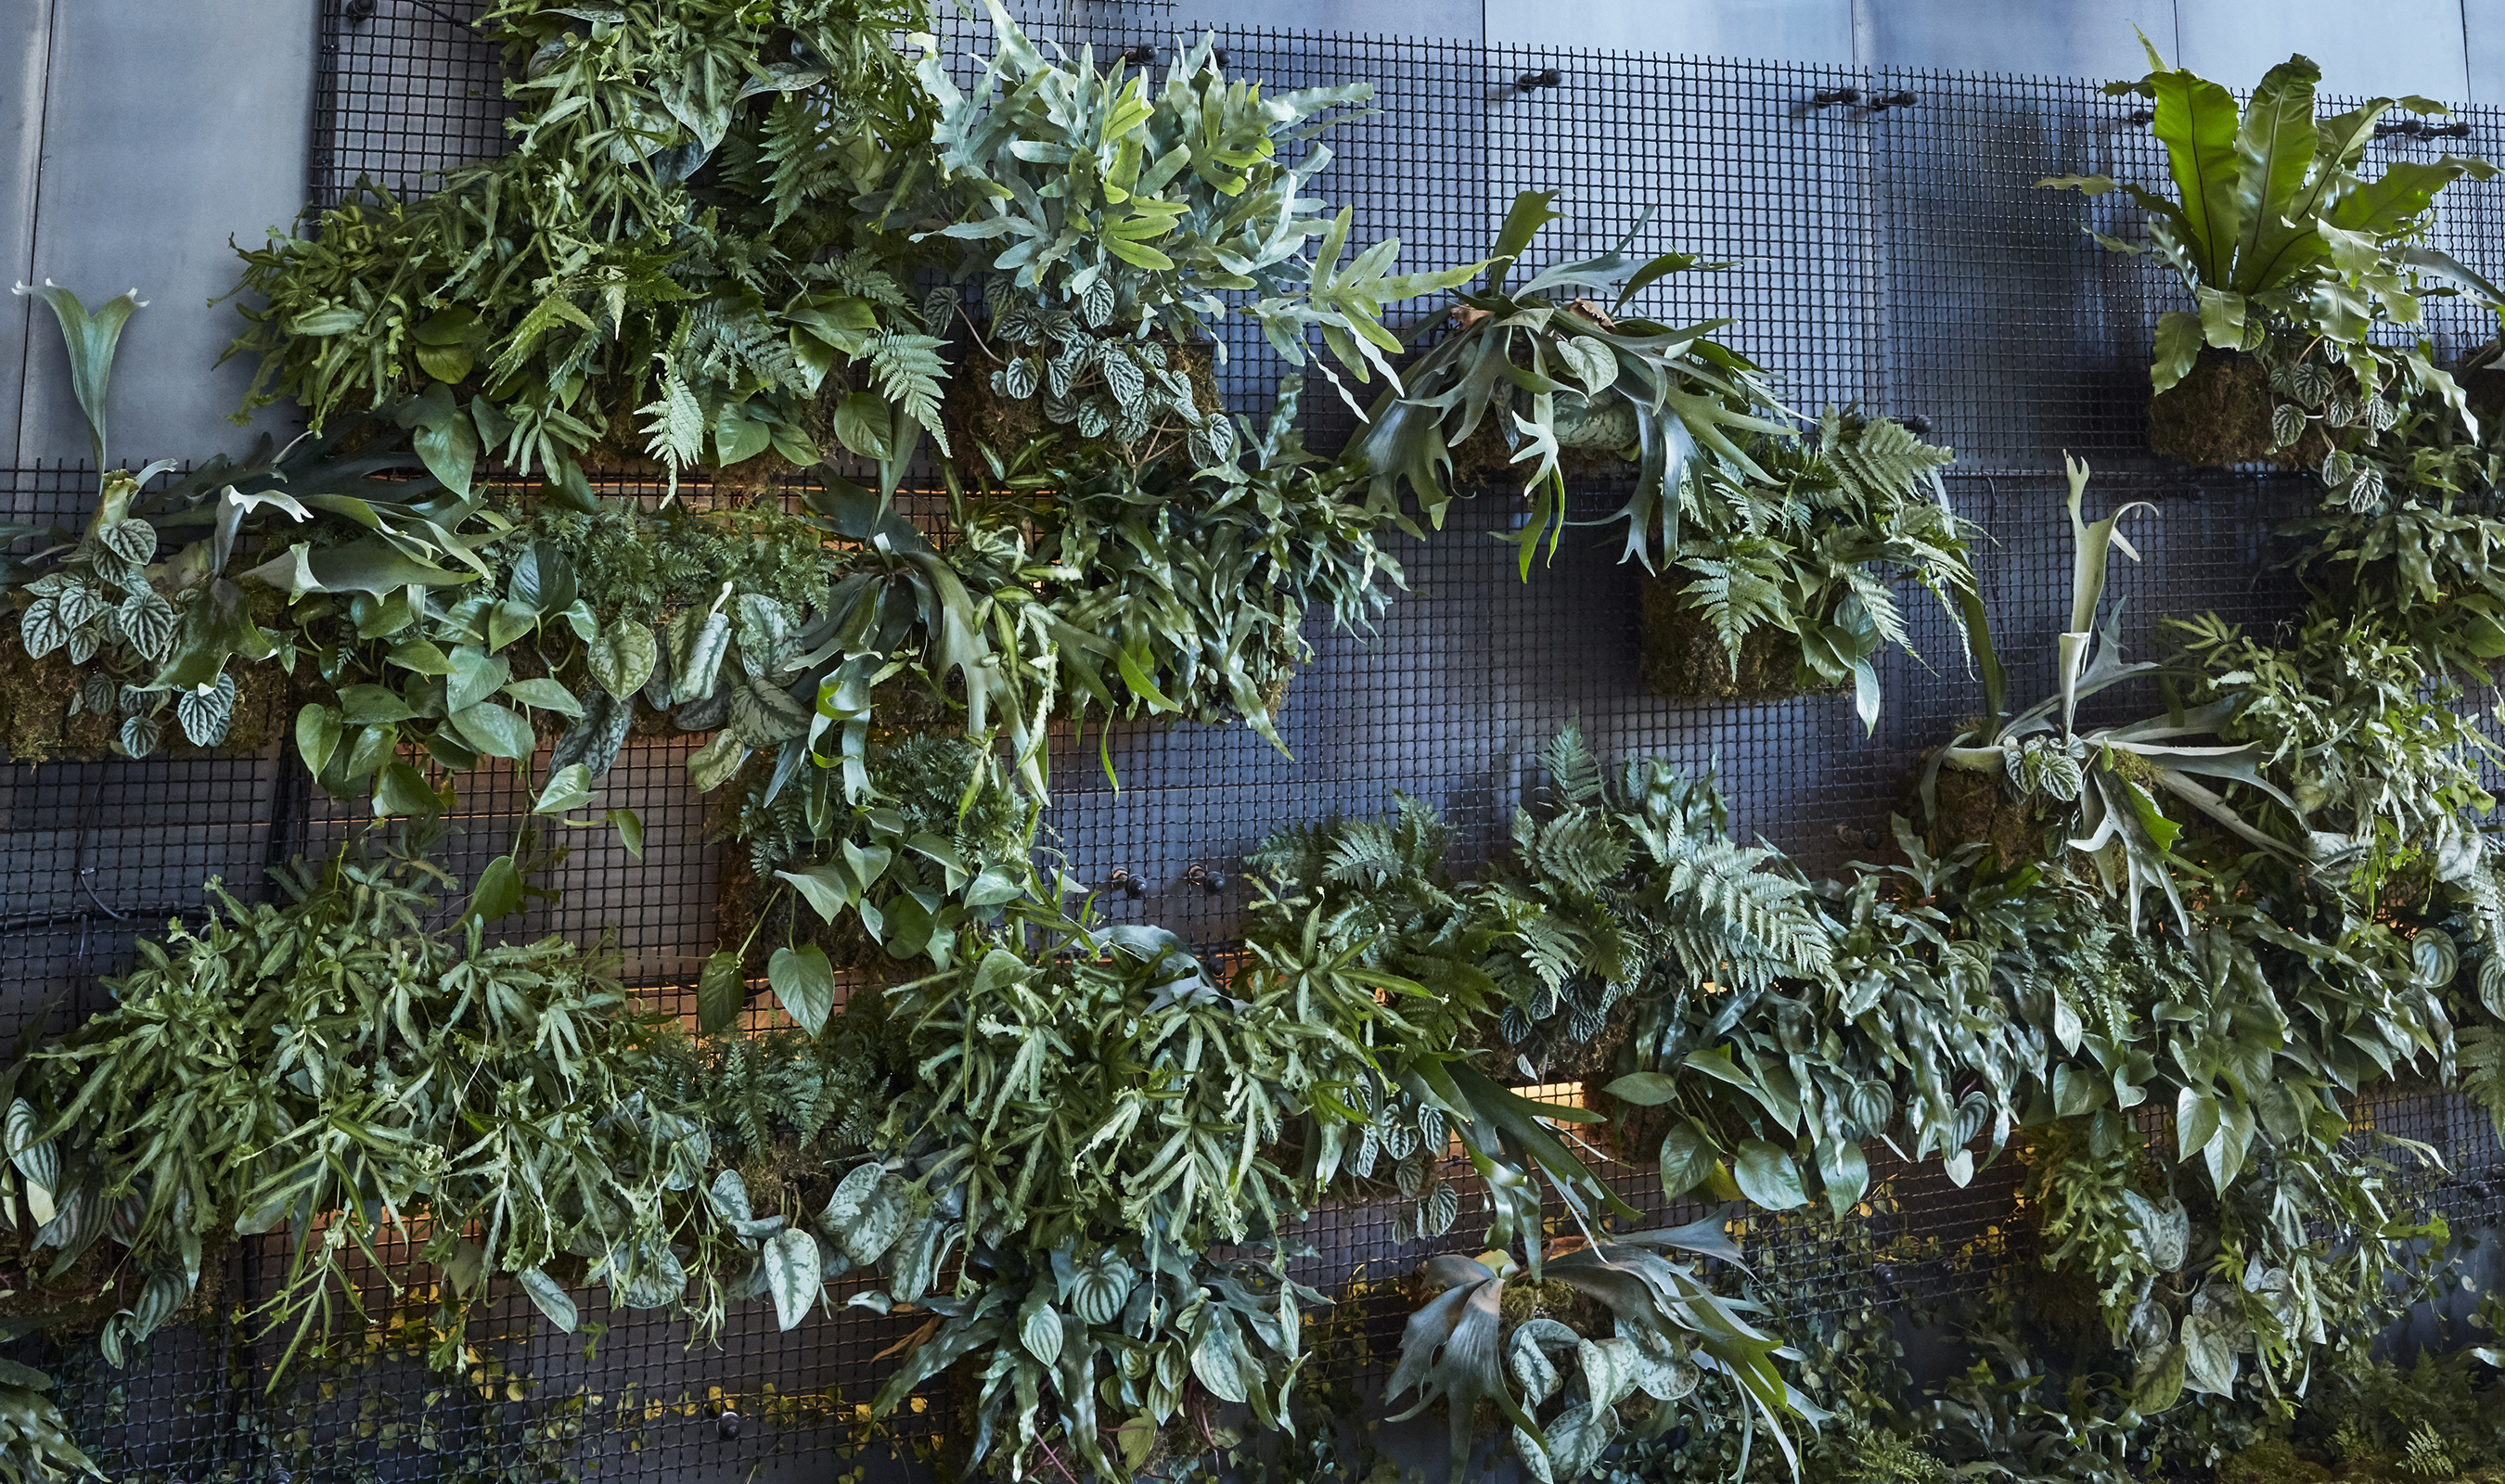 """AgroSci chose the intercrimp motif, commonly seen in urban-inspired window guards and fire escapes, to give the impression that plants were """"reclaiming"""" the location using steel as a main element"""